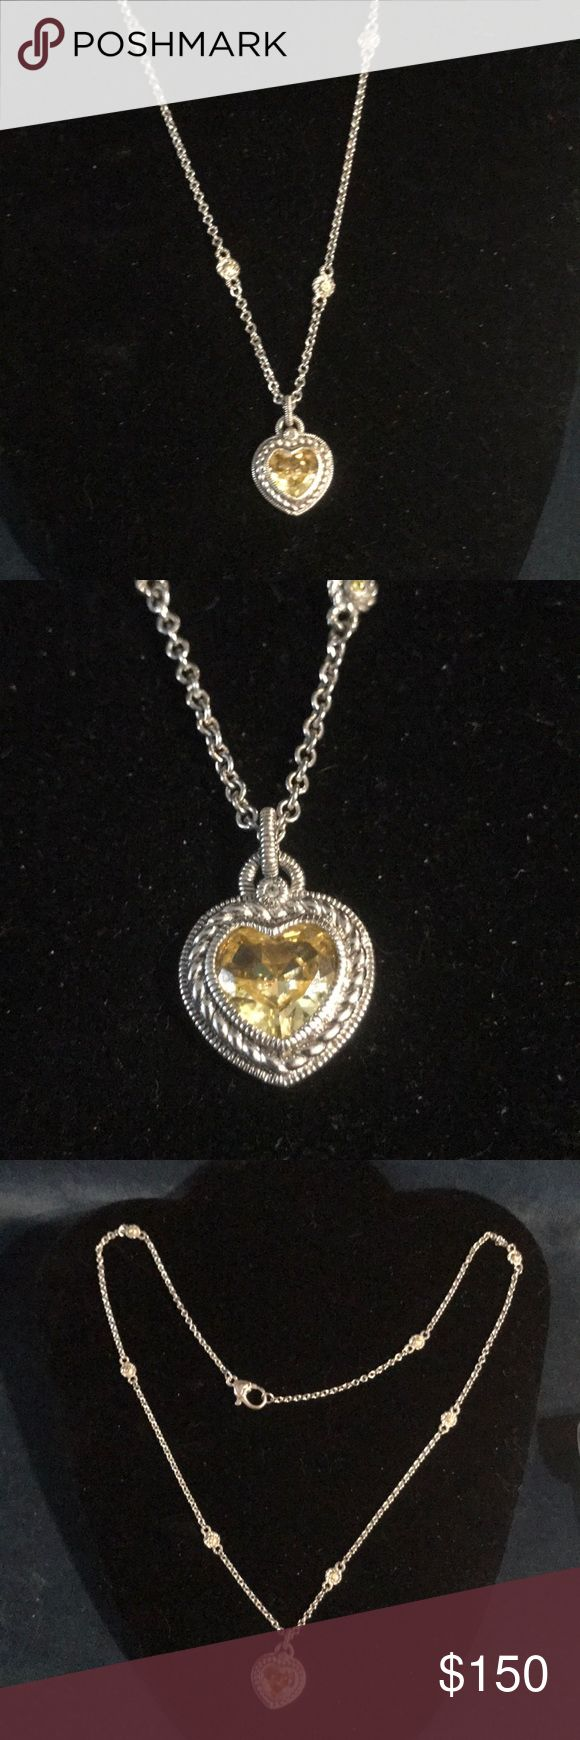 "Judith Ripka Yellow Heart Necklace Sterling Silver and CZ Judith Ripka Heart Necklace  Signed: Judith, 925 The chain is approximately 22"" and Pendant is approximately 1"" if you don't like my price make me a offer! Judith Ripka Jewelry Necklaces"